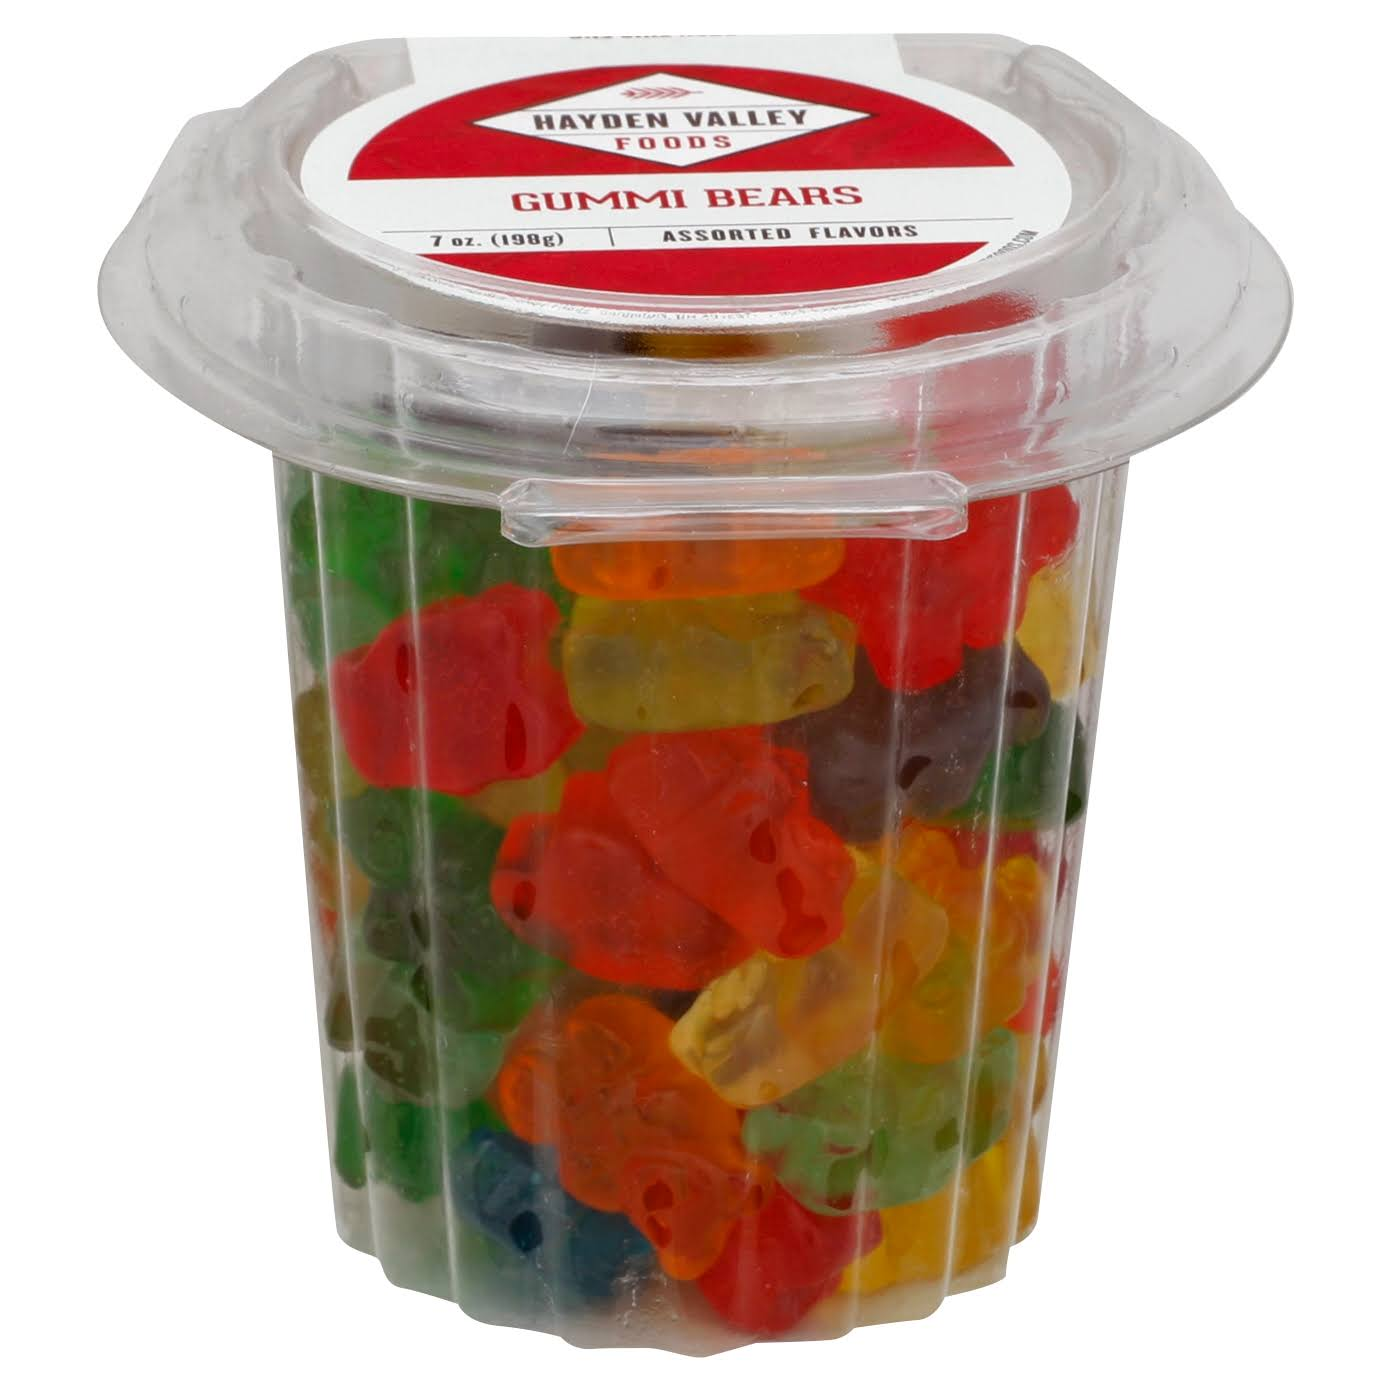 Hayden Valley Gummi Bears, Assorted Flavors - 7 oz